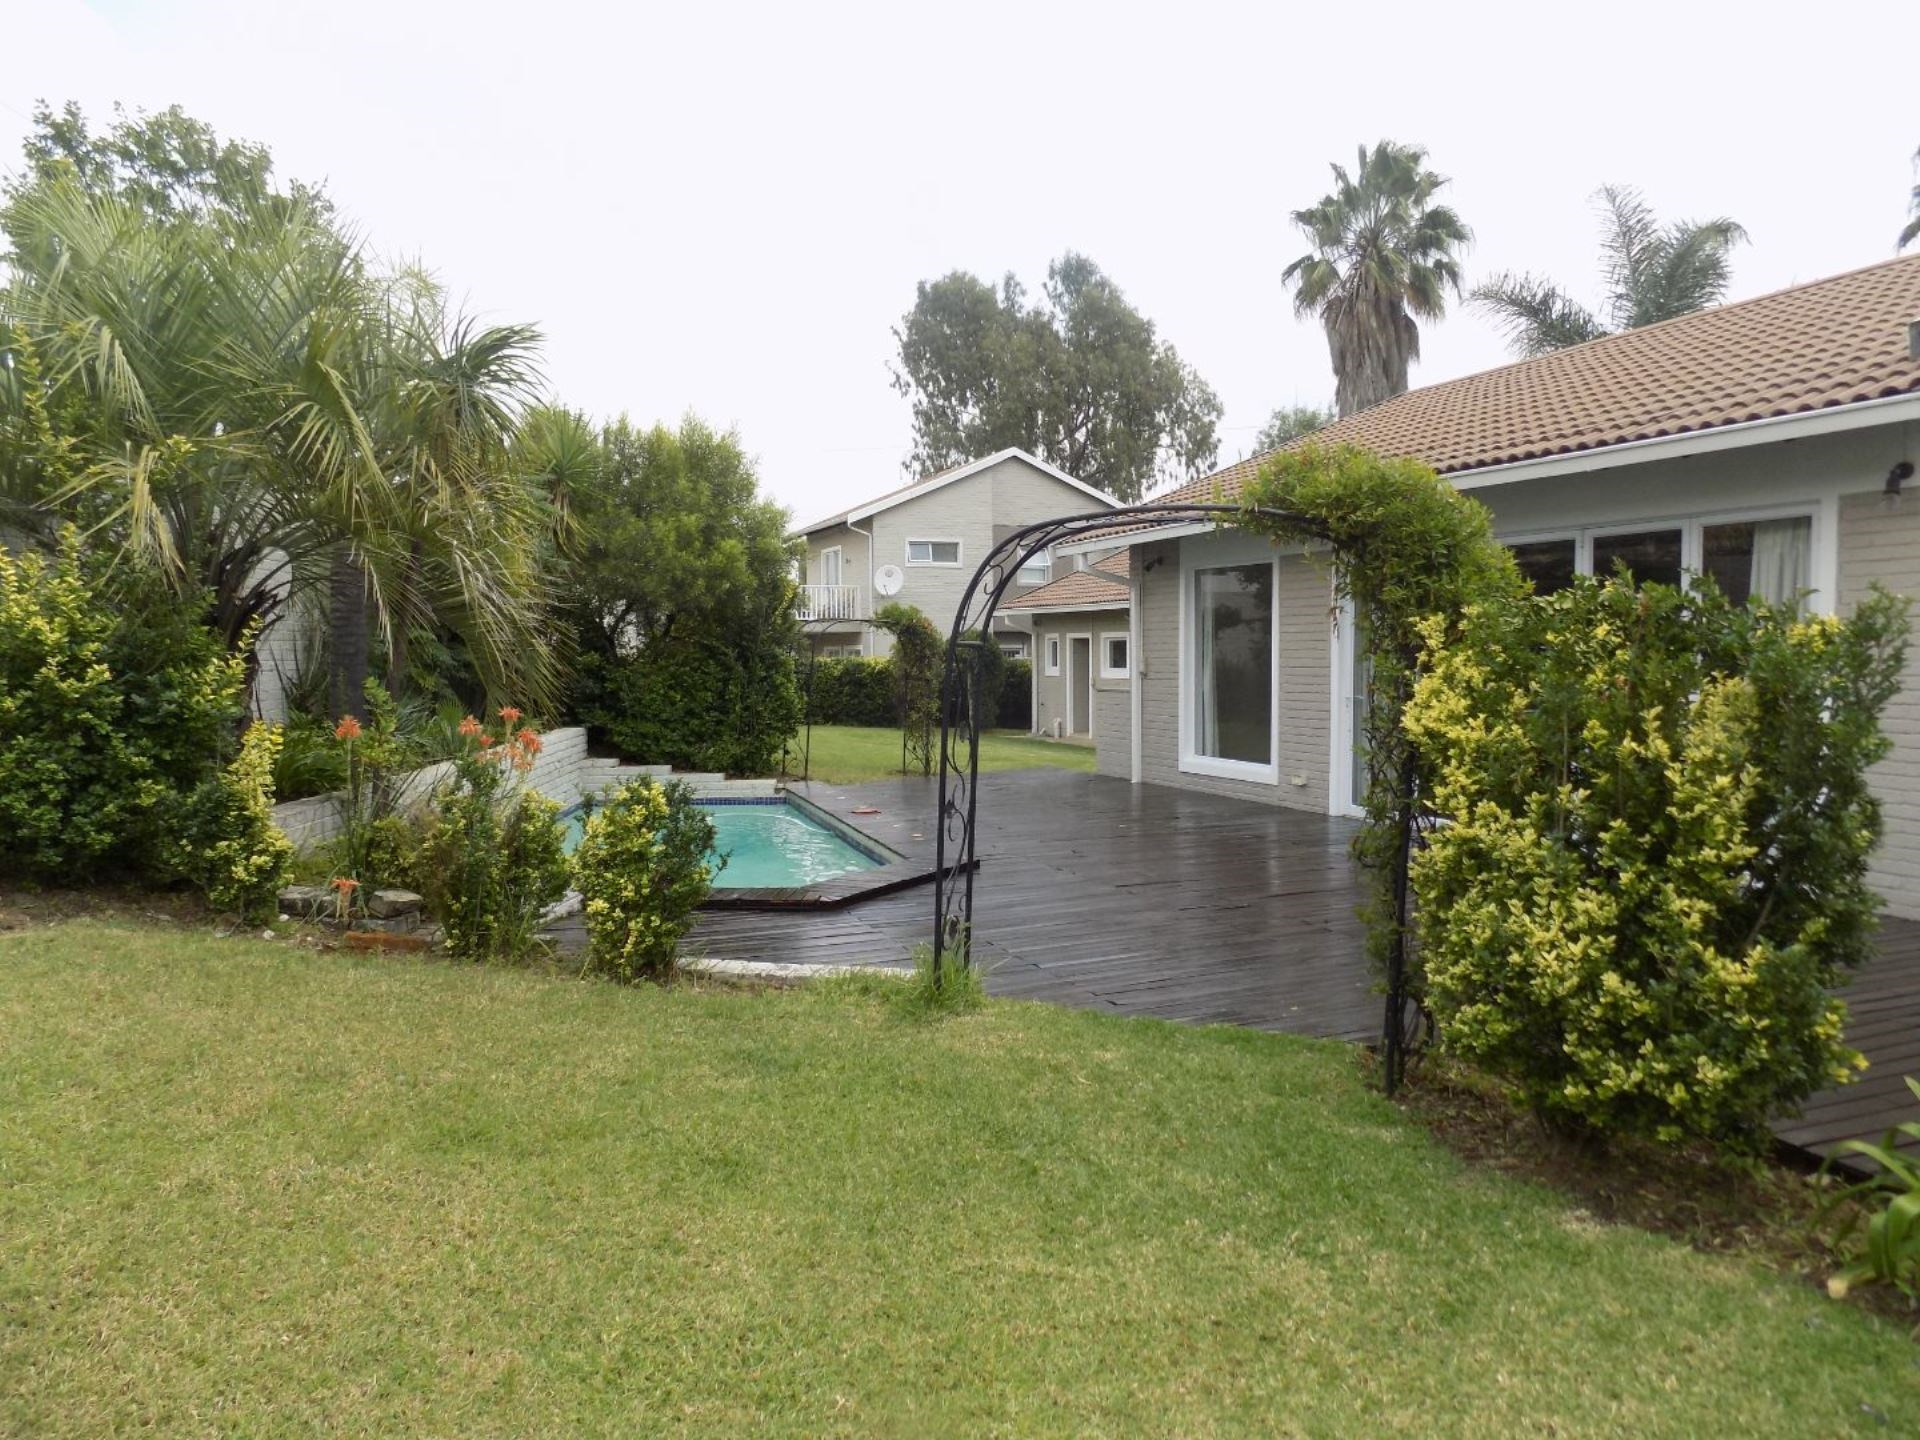 4 Bedroom House to Rent in River Club